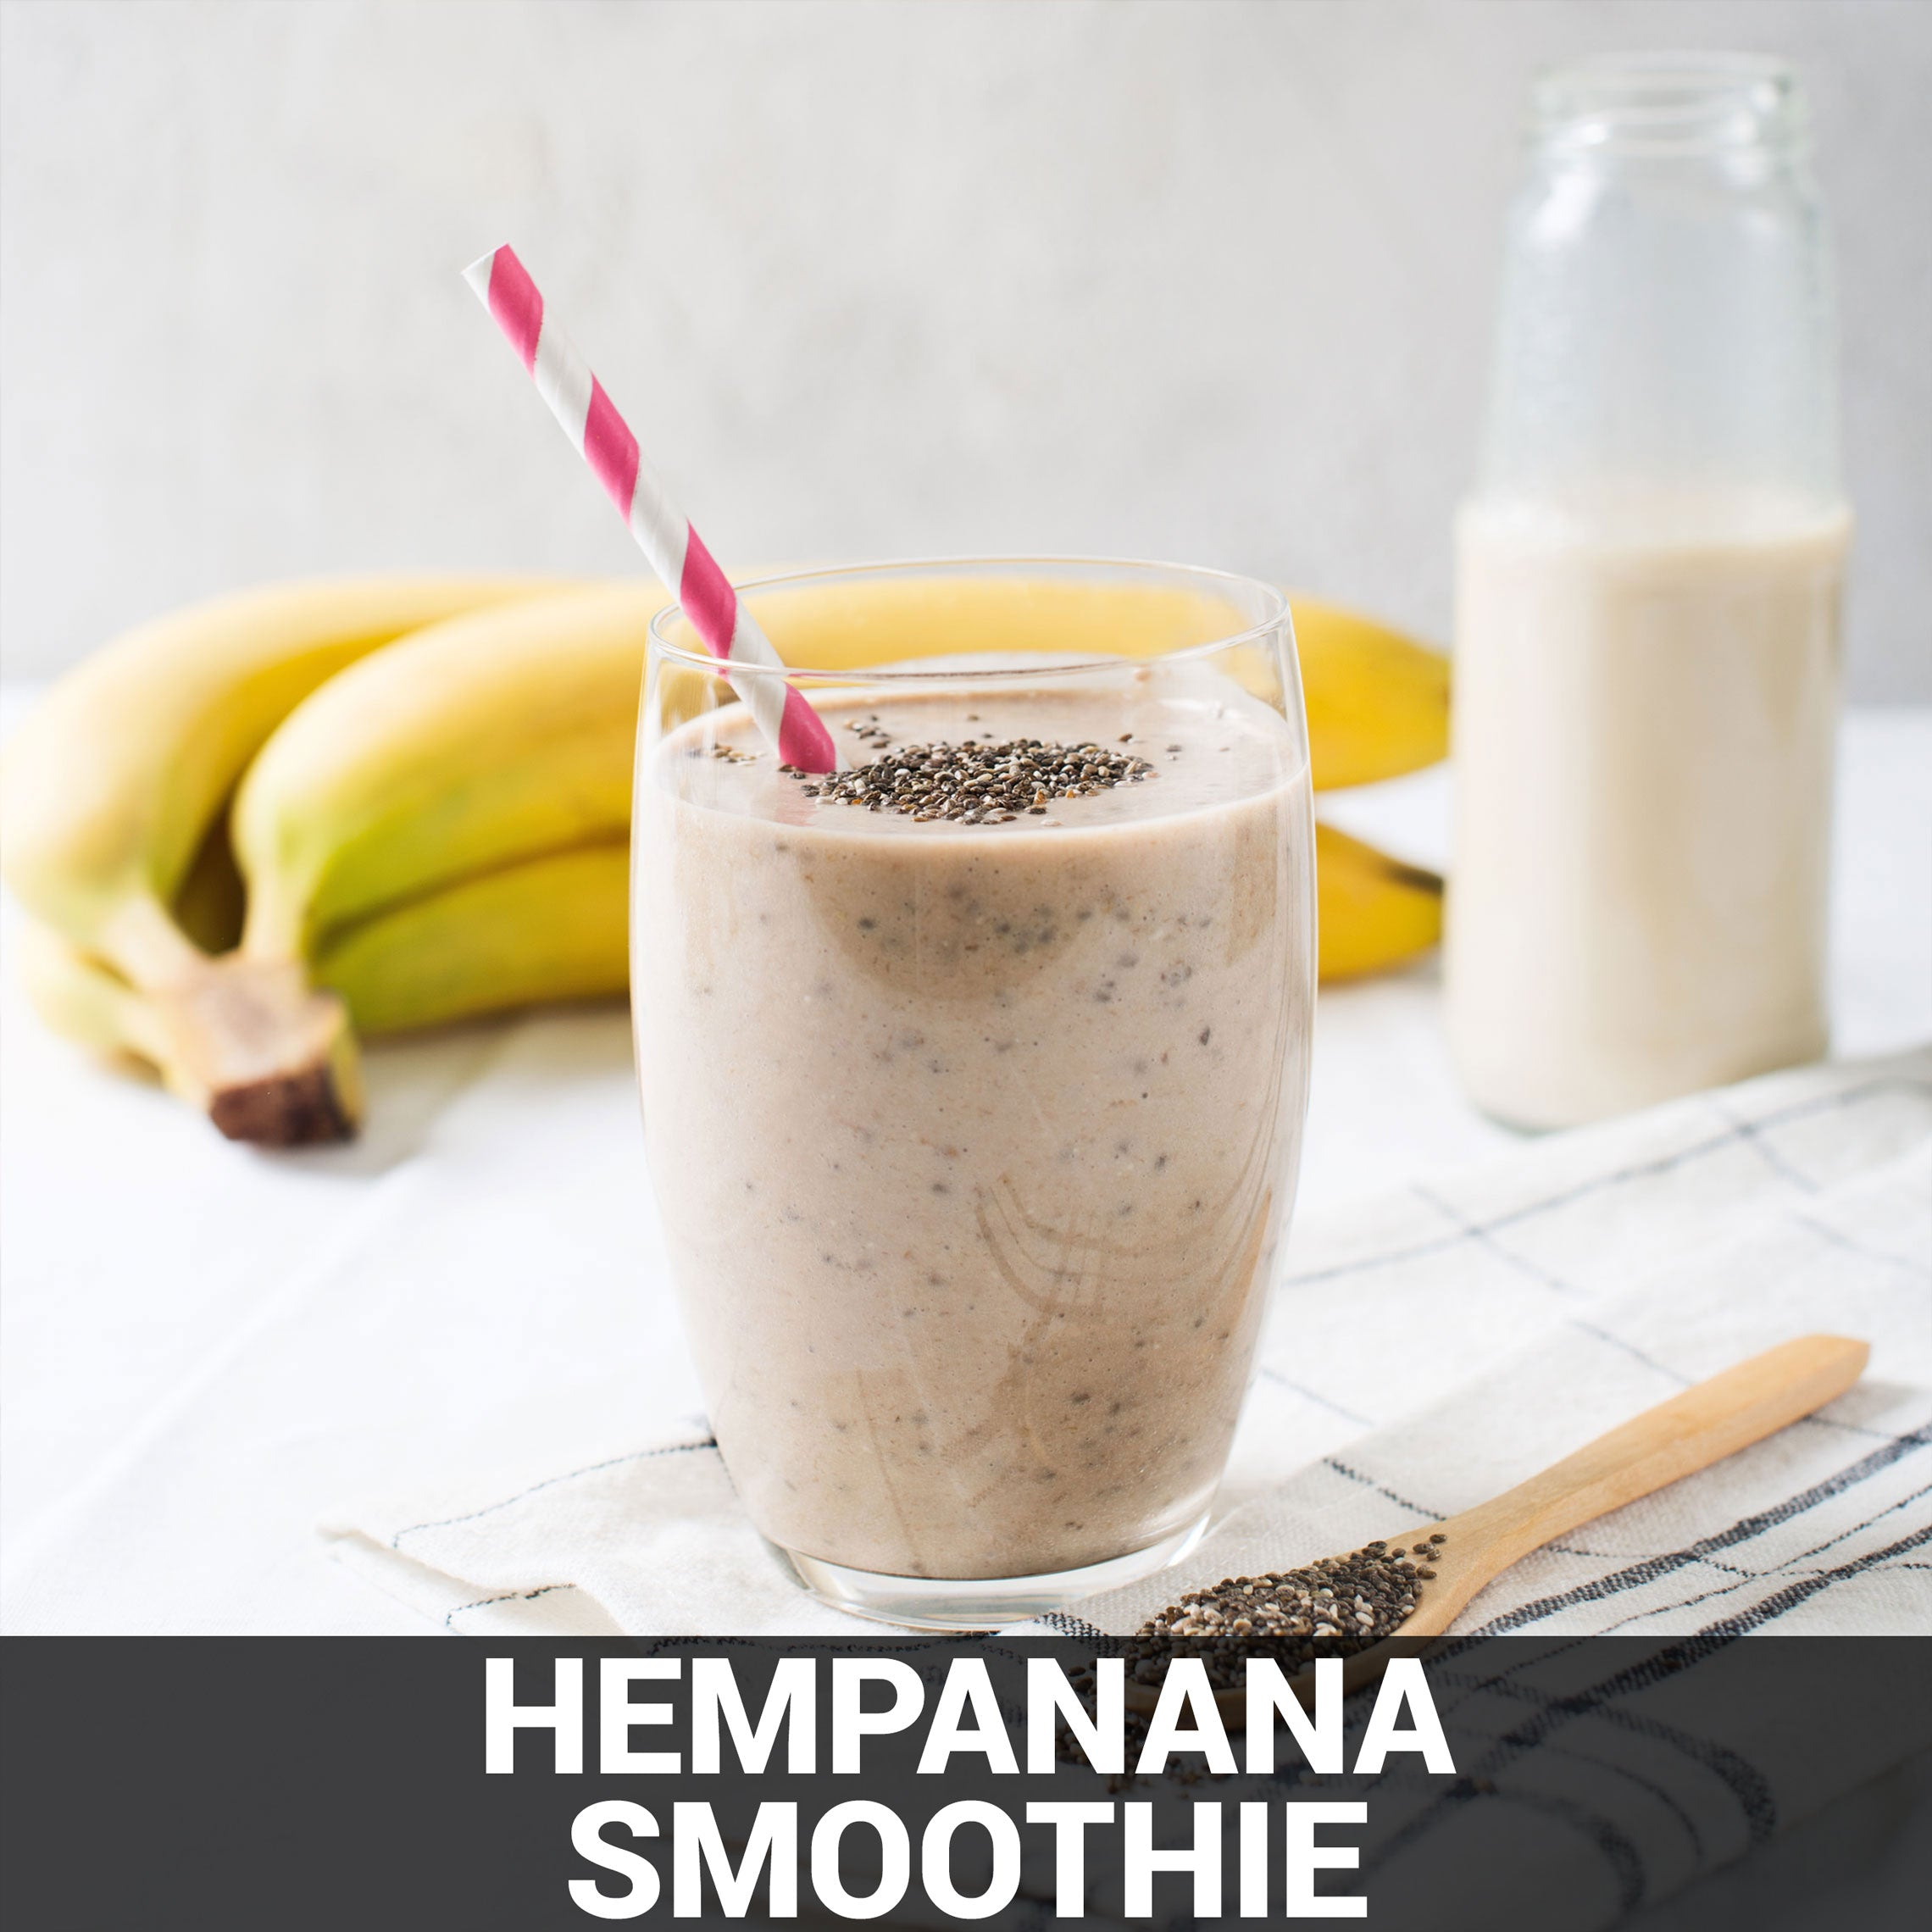 Hempanana Smoothie Recipe - Foods Alive